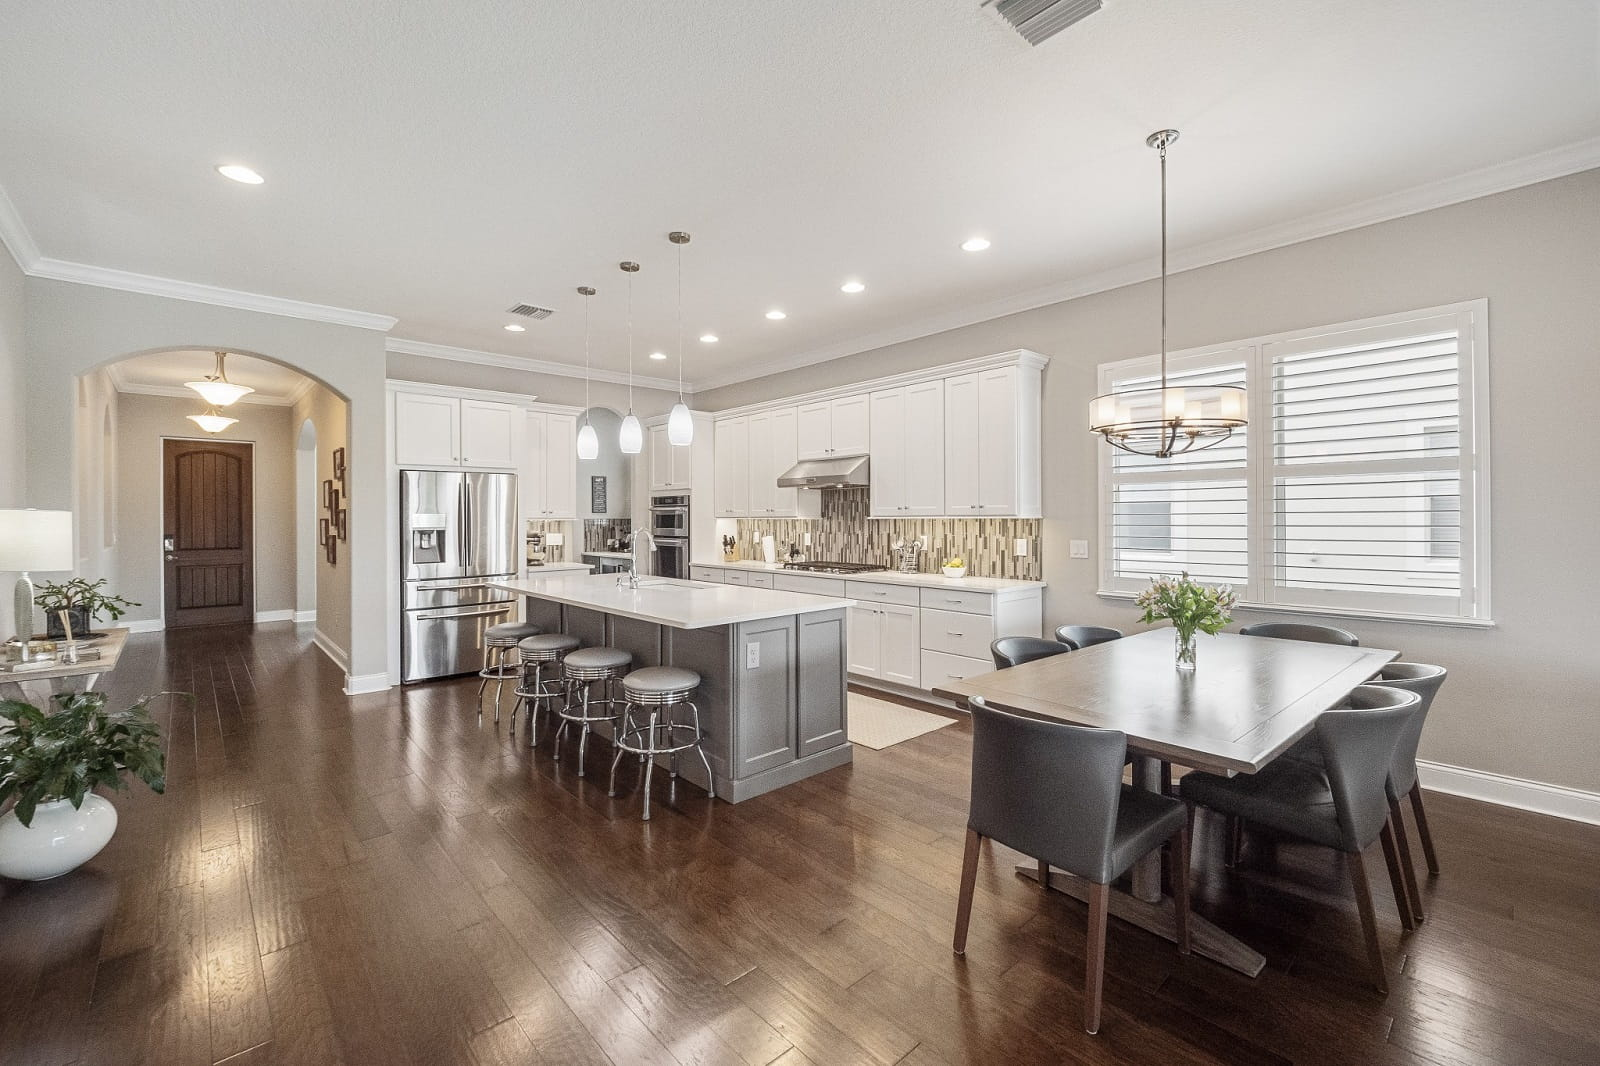 Real Estate Photography in Orlando - FL - USA - Kitchen View